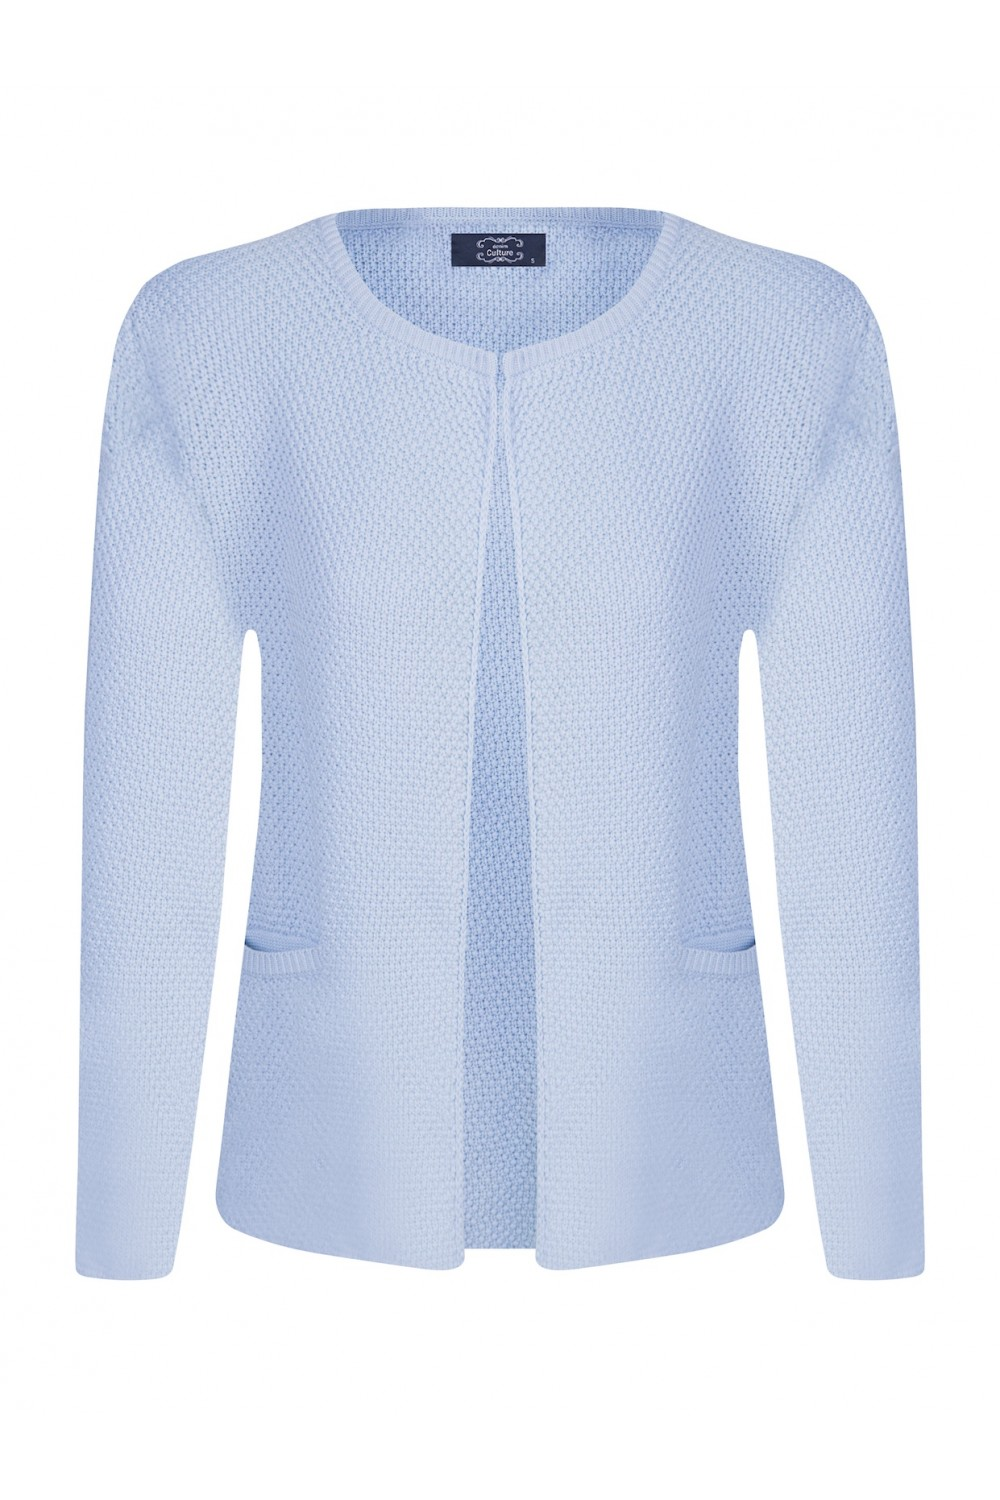 Women's Cardigan Hook Crew Neck Blue